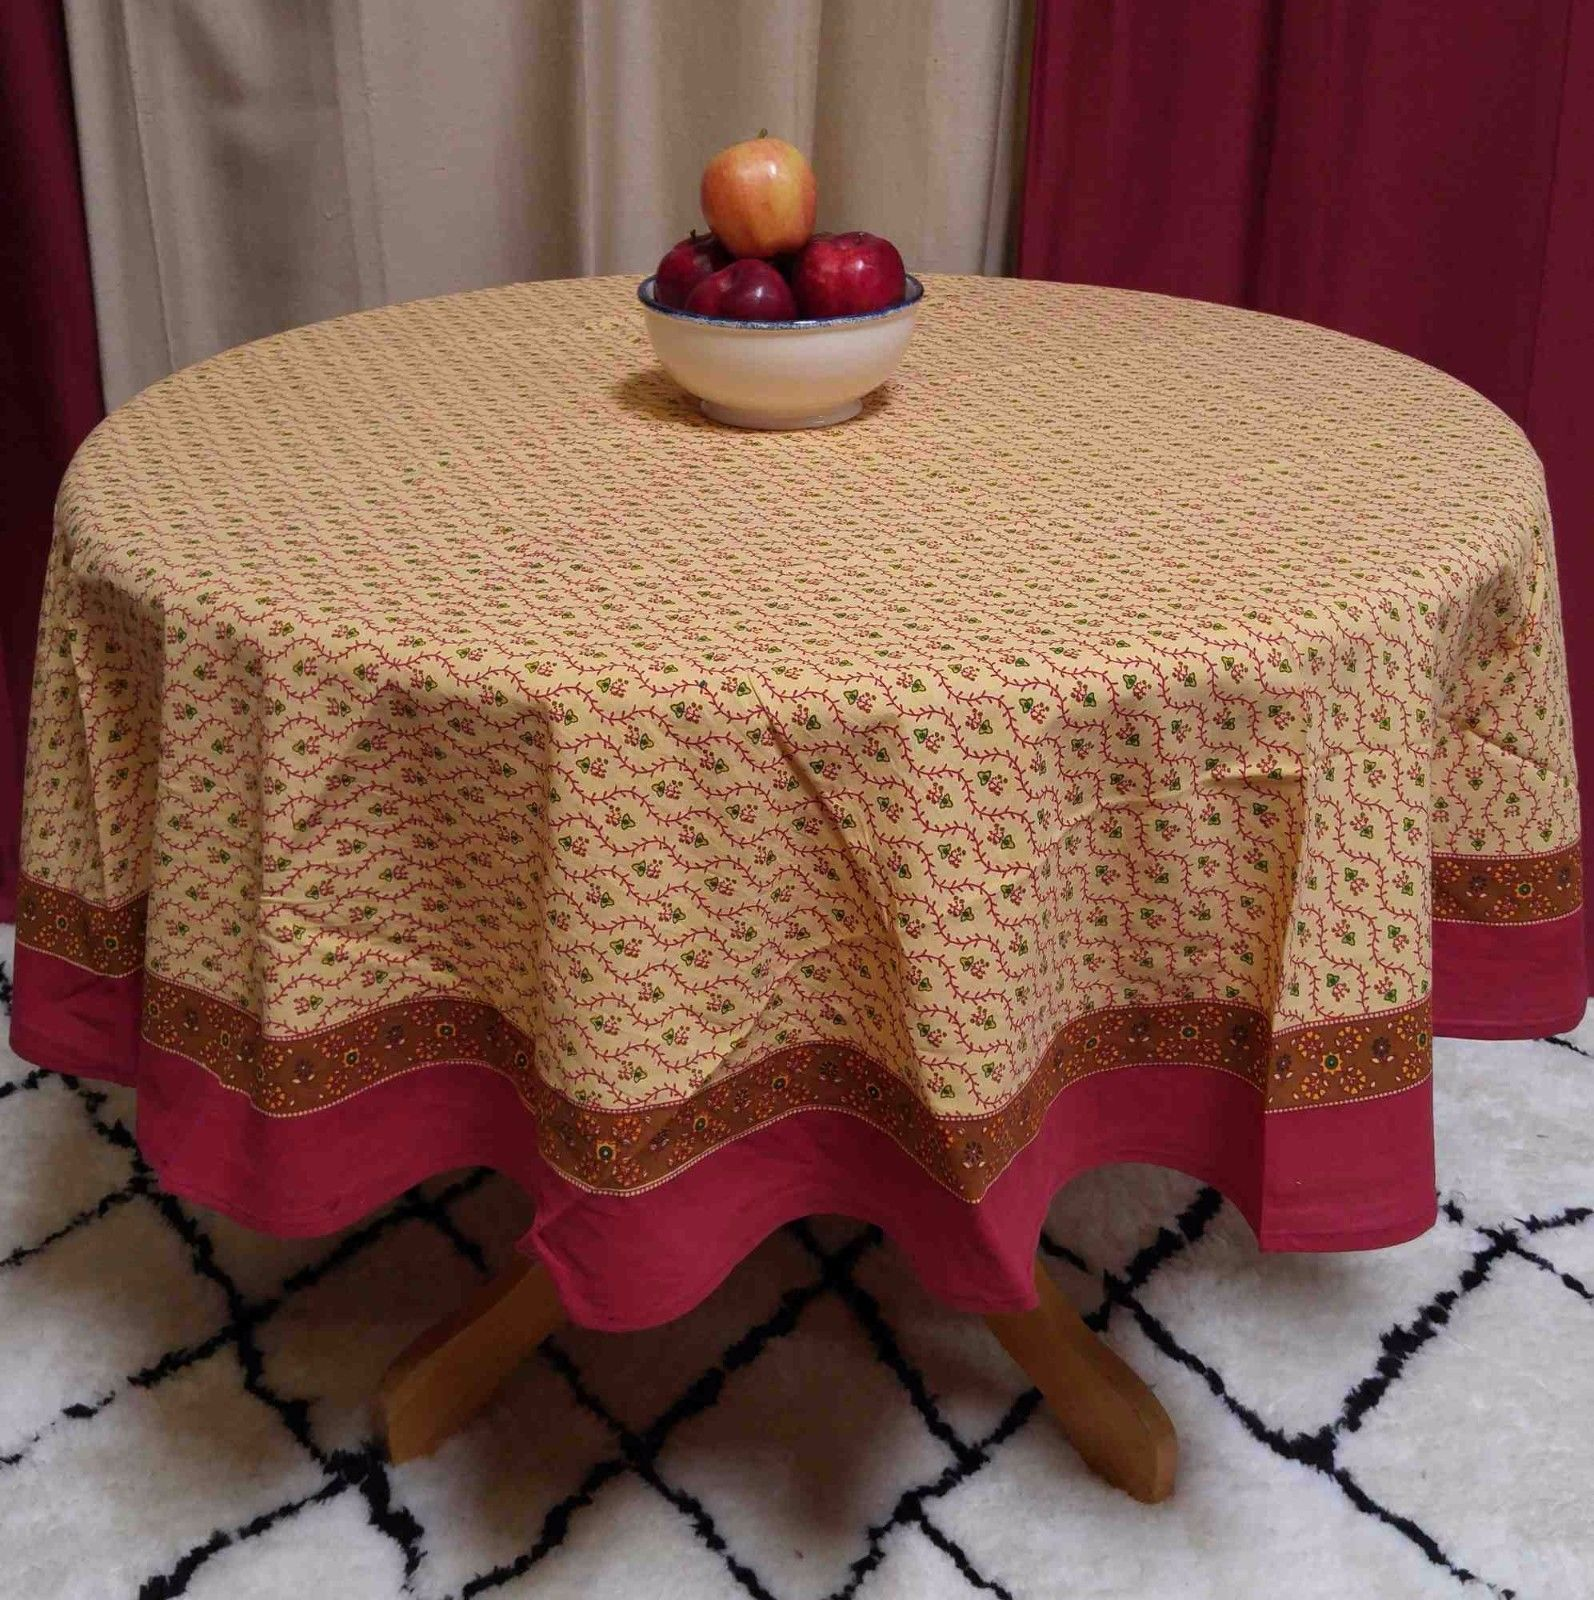 Cotton Floral Tablecloth Round 60 Inches Gold Red Green   Walmart.com